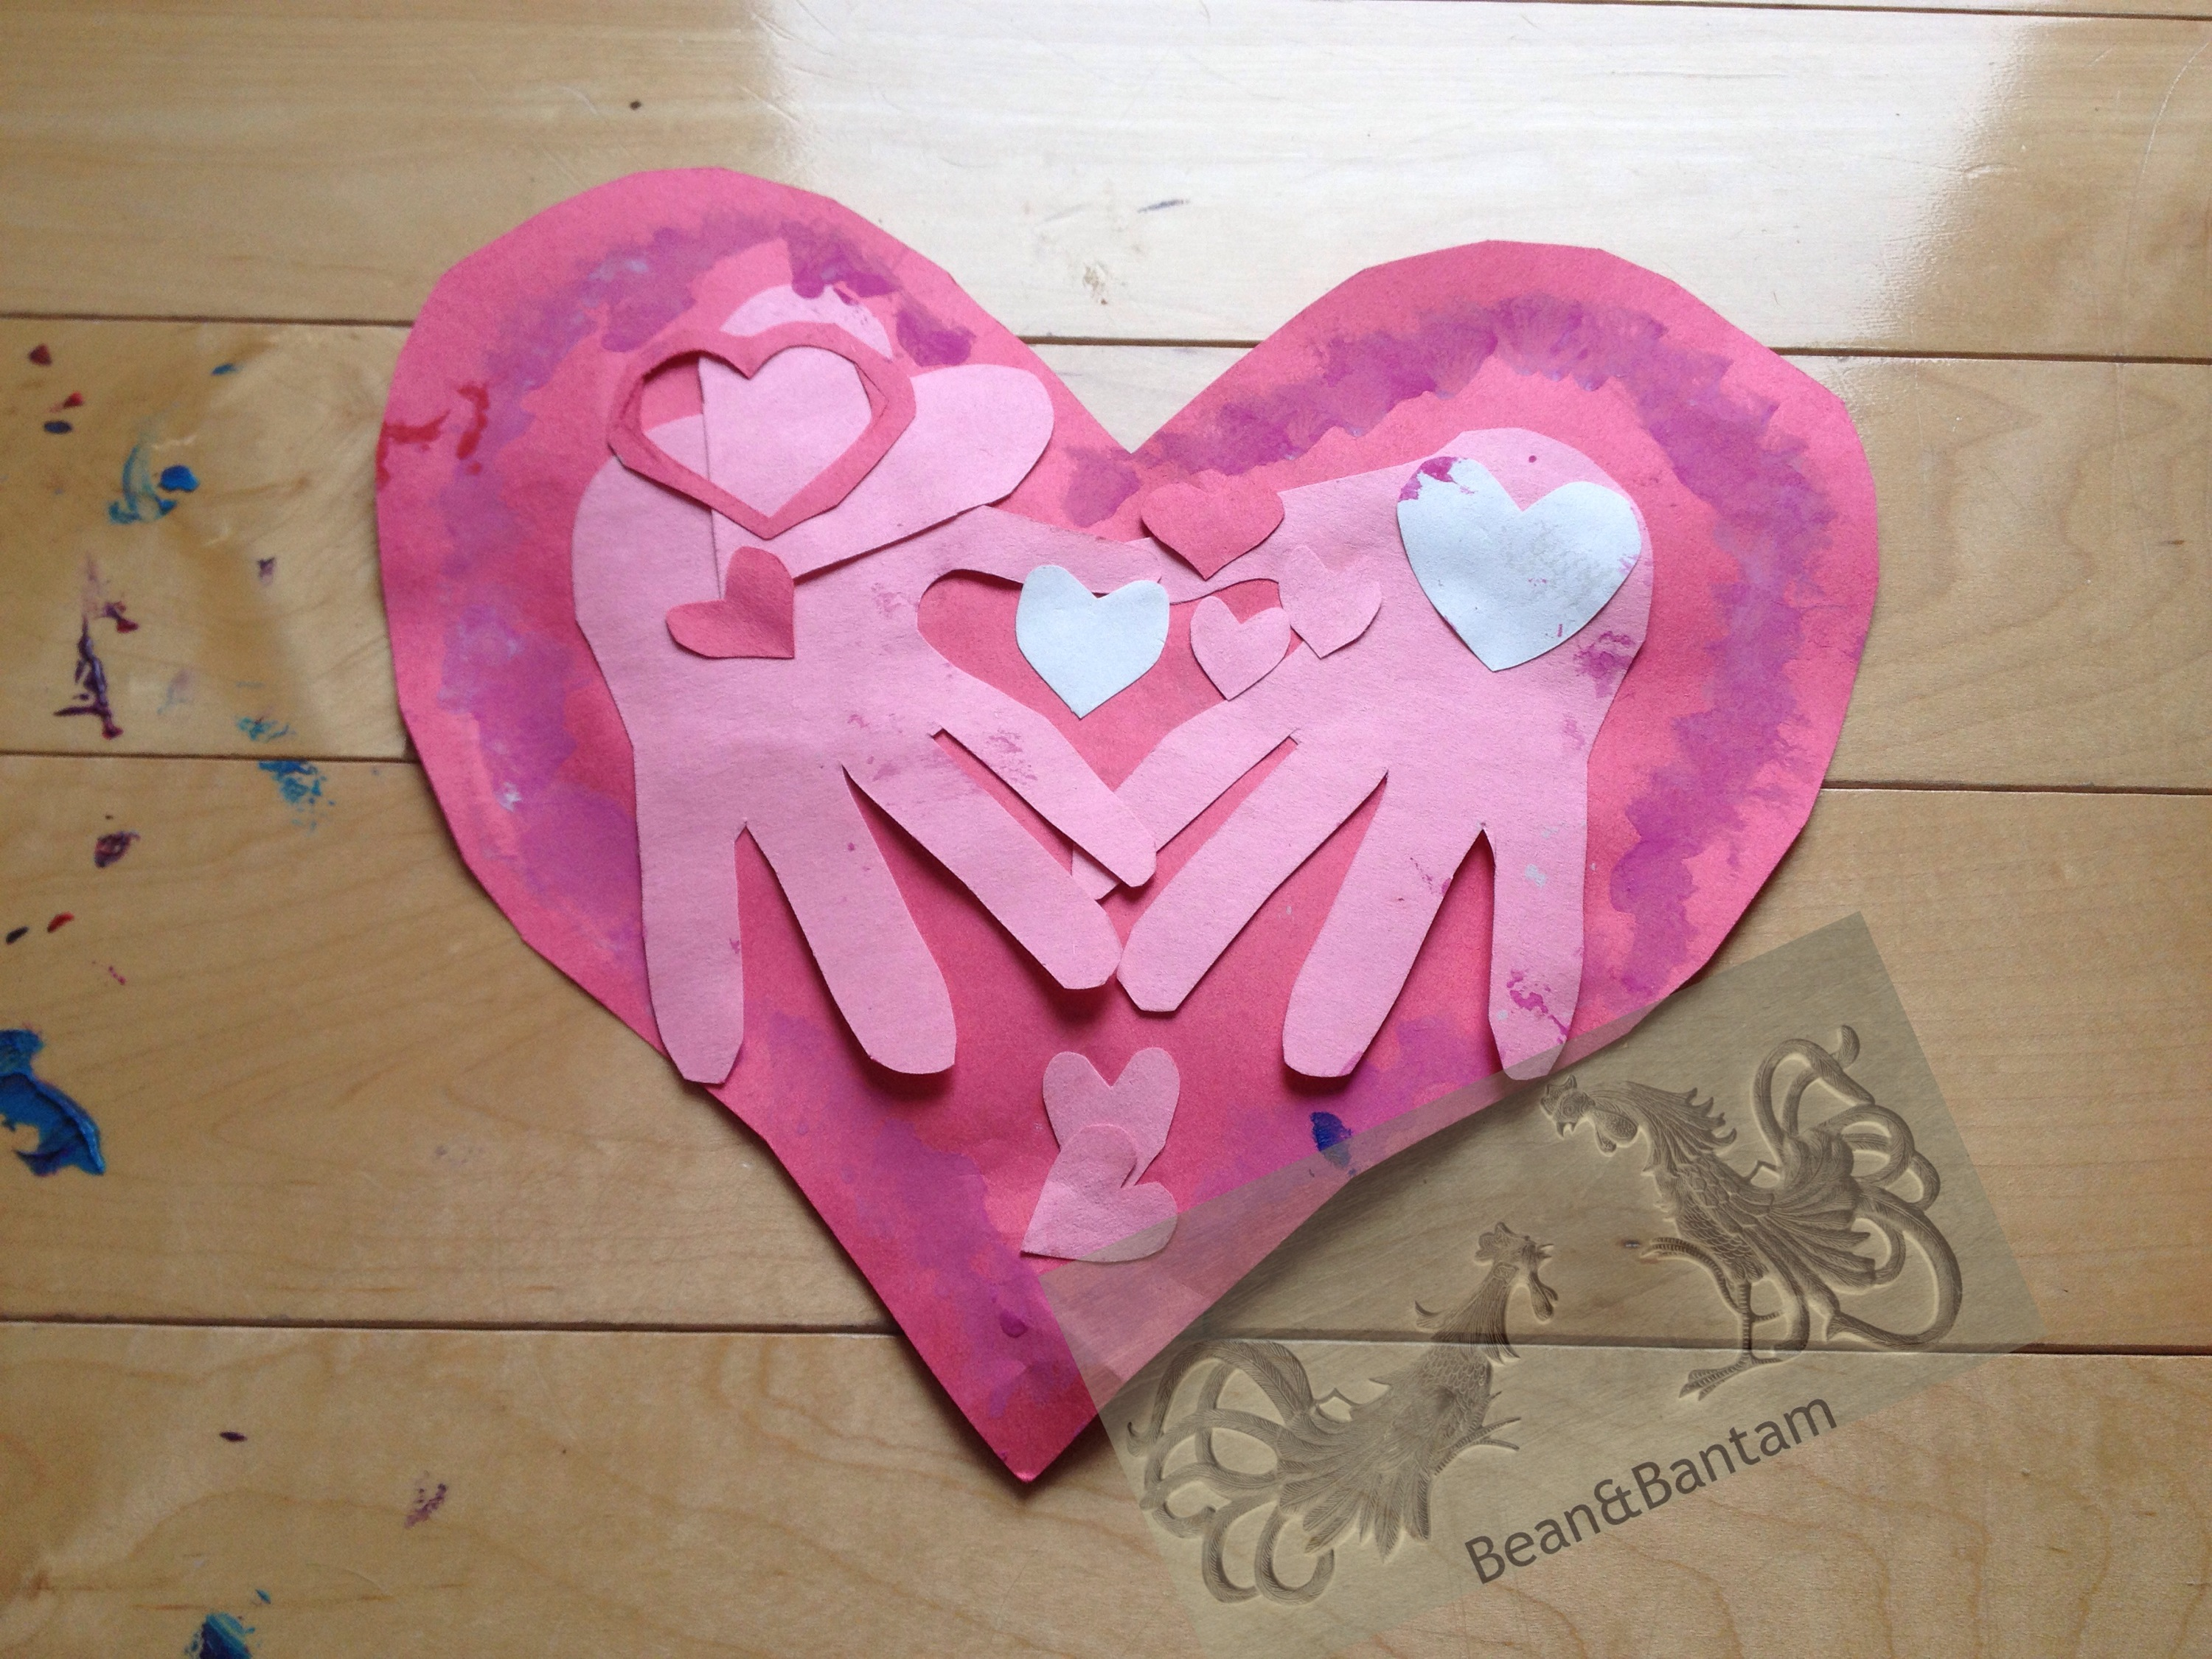 Messy Kid Fun: handmade valentines with a two and a half year old